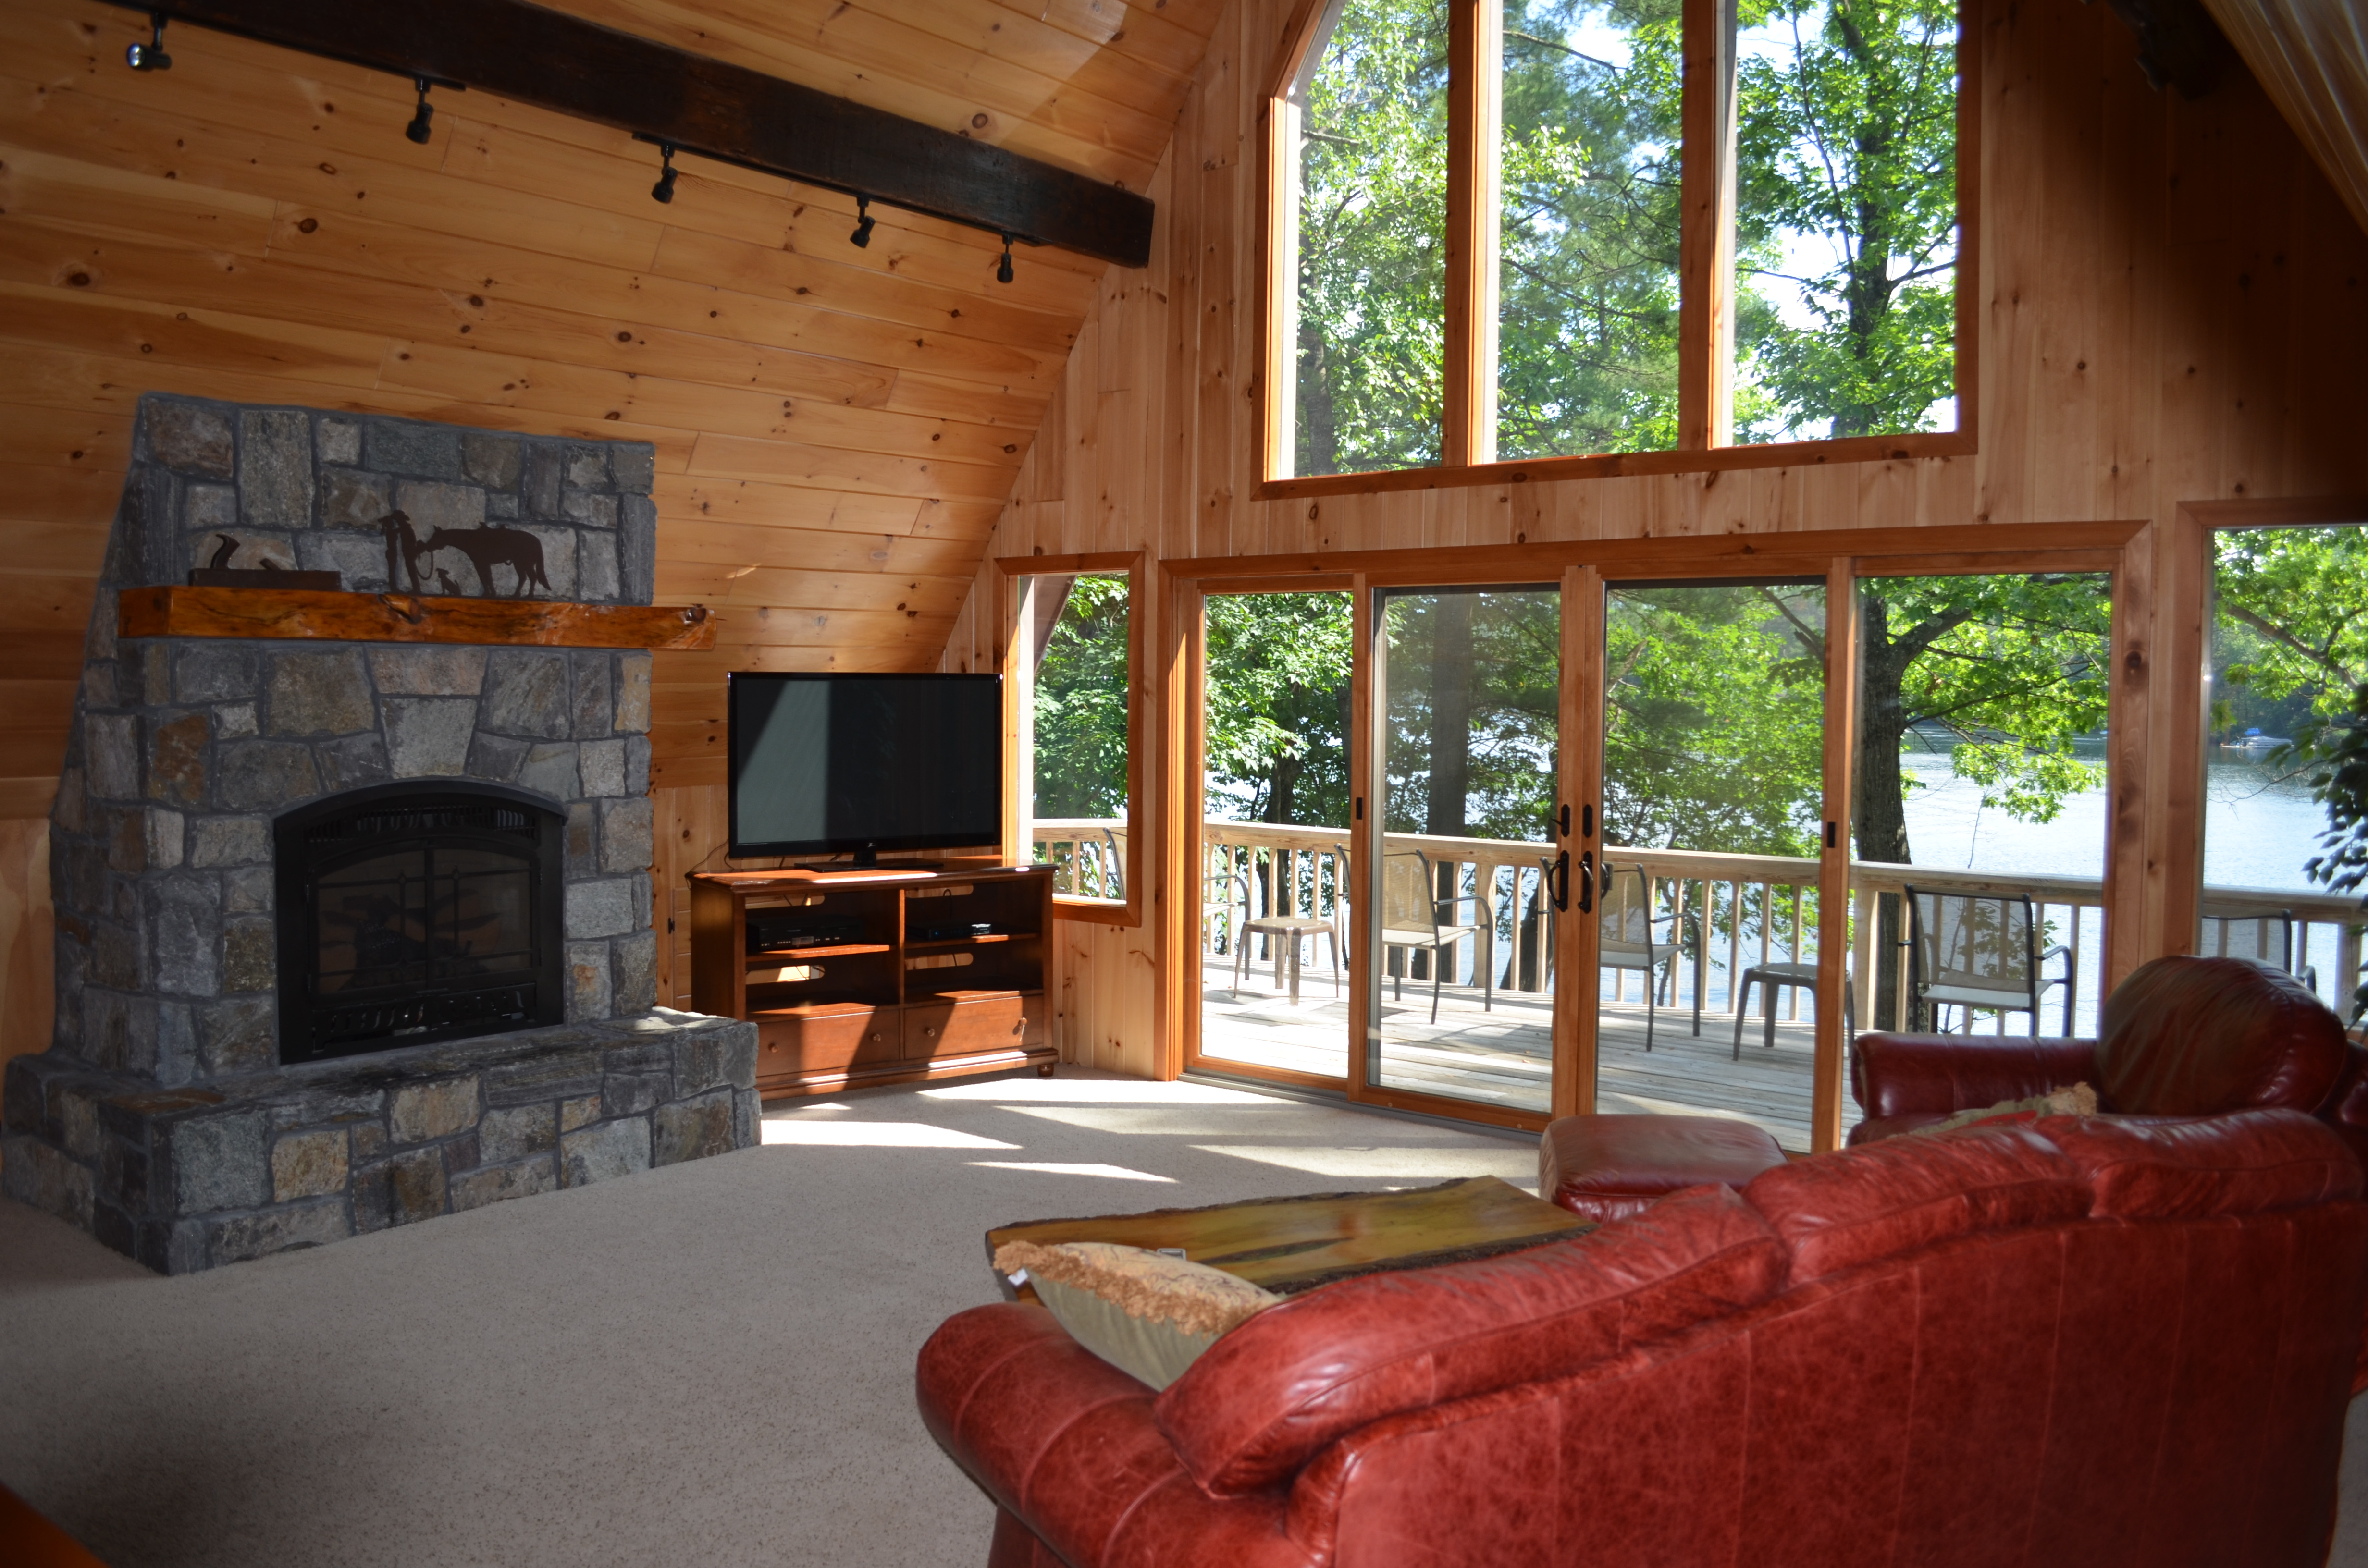 modular adirondack town about cabins of warren george and park home cod village hague homes in custom the county lake ny at cape